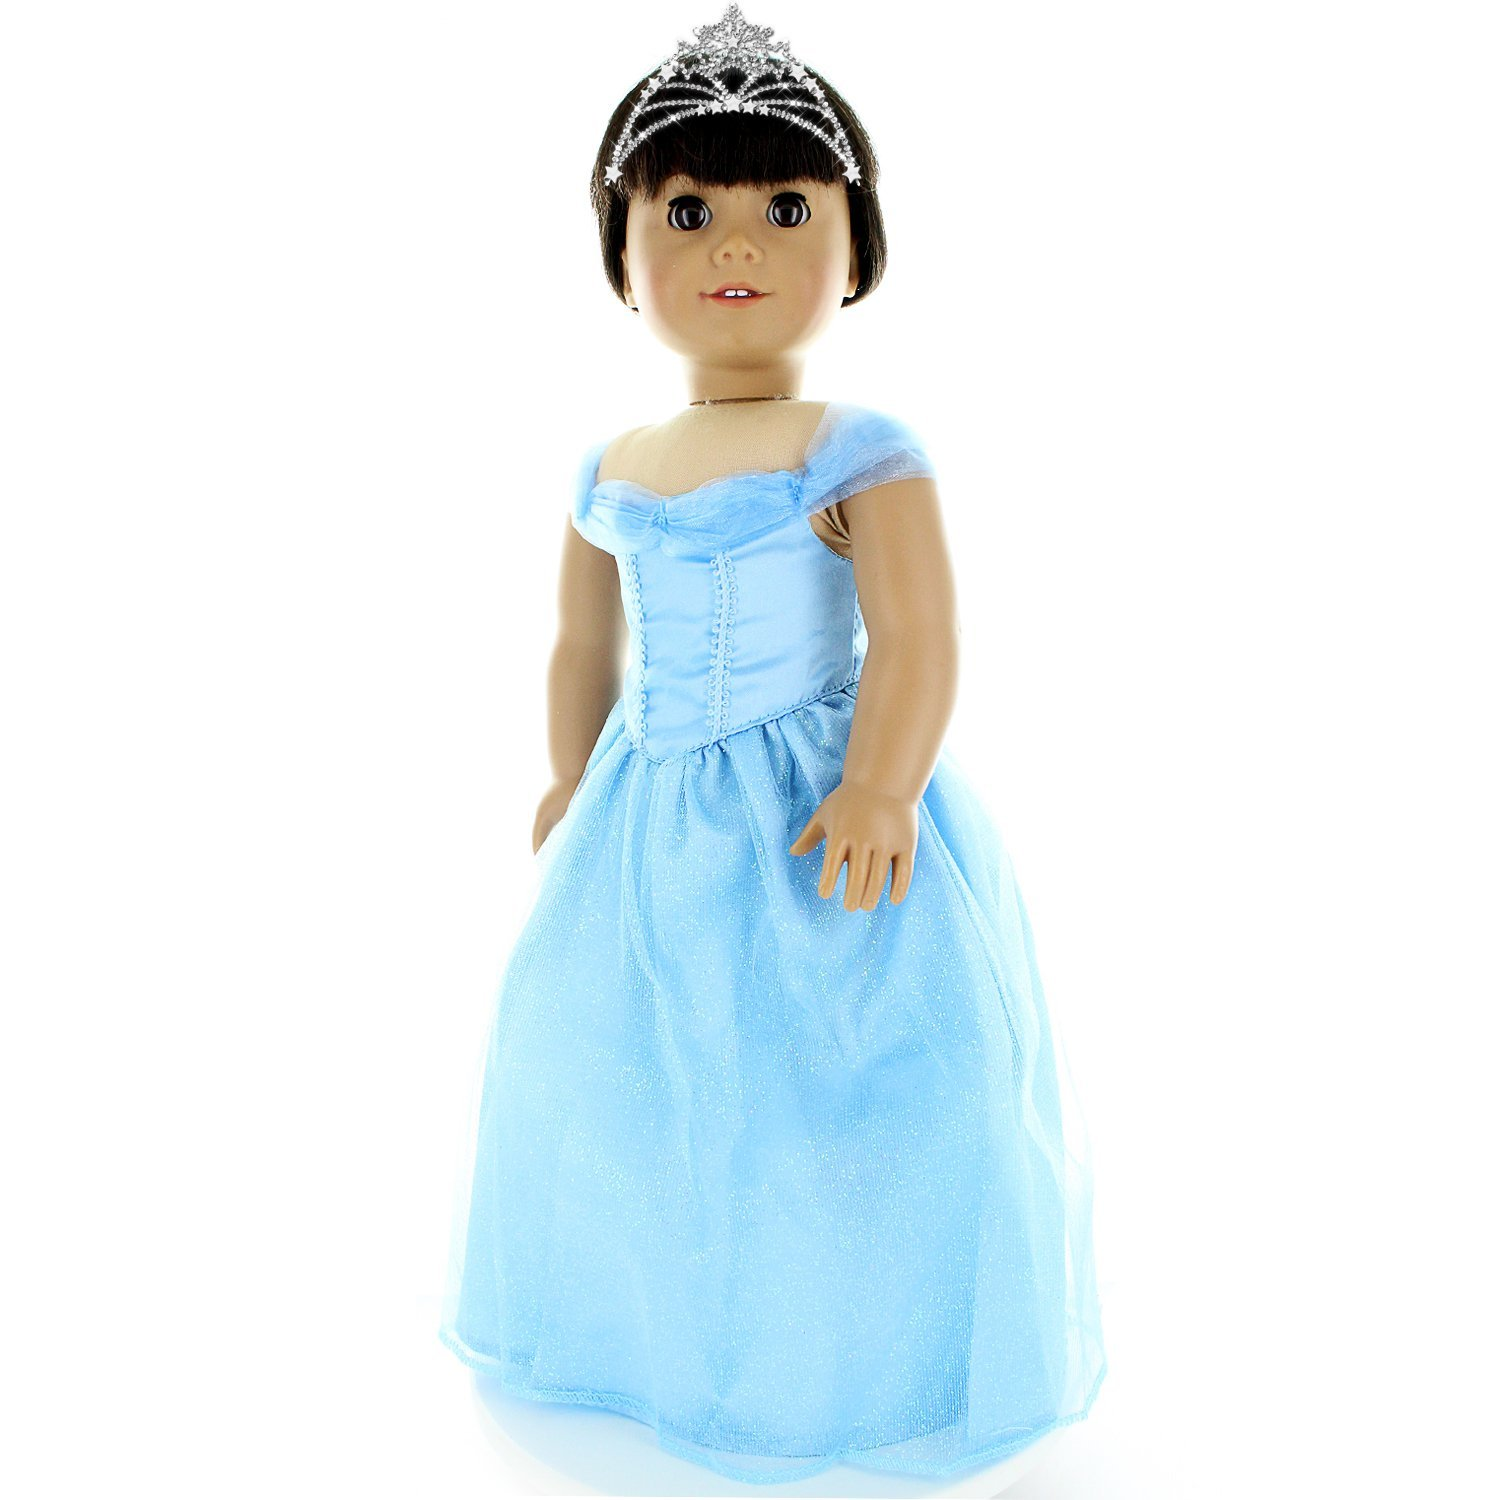 "Doll Clothes Blue Dress Outfit Fits American Girl & Other 18"" Dolls by Pink Butterfly Closet"